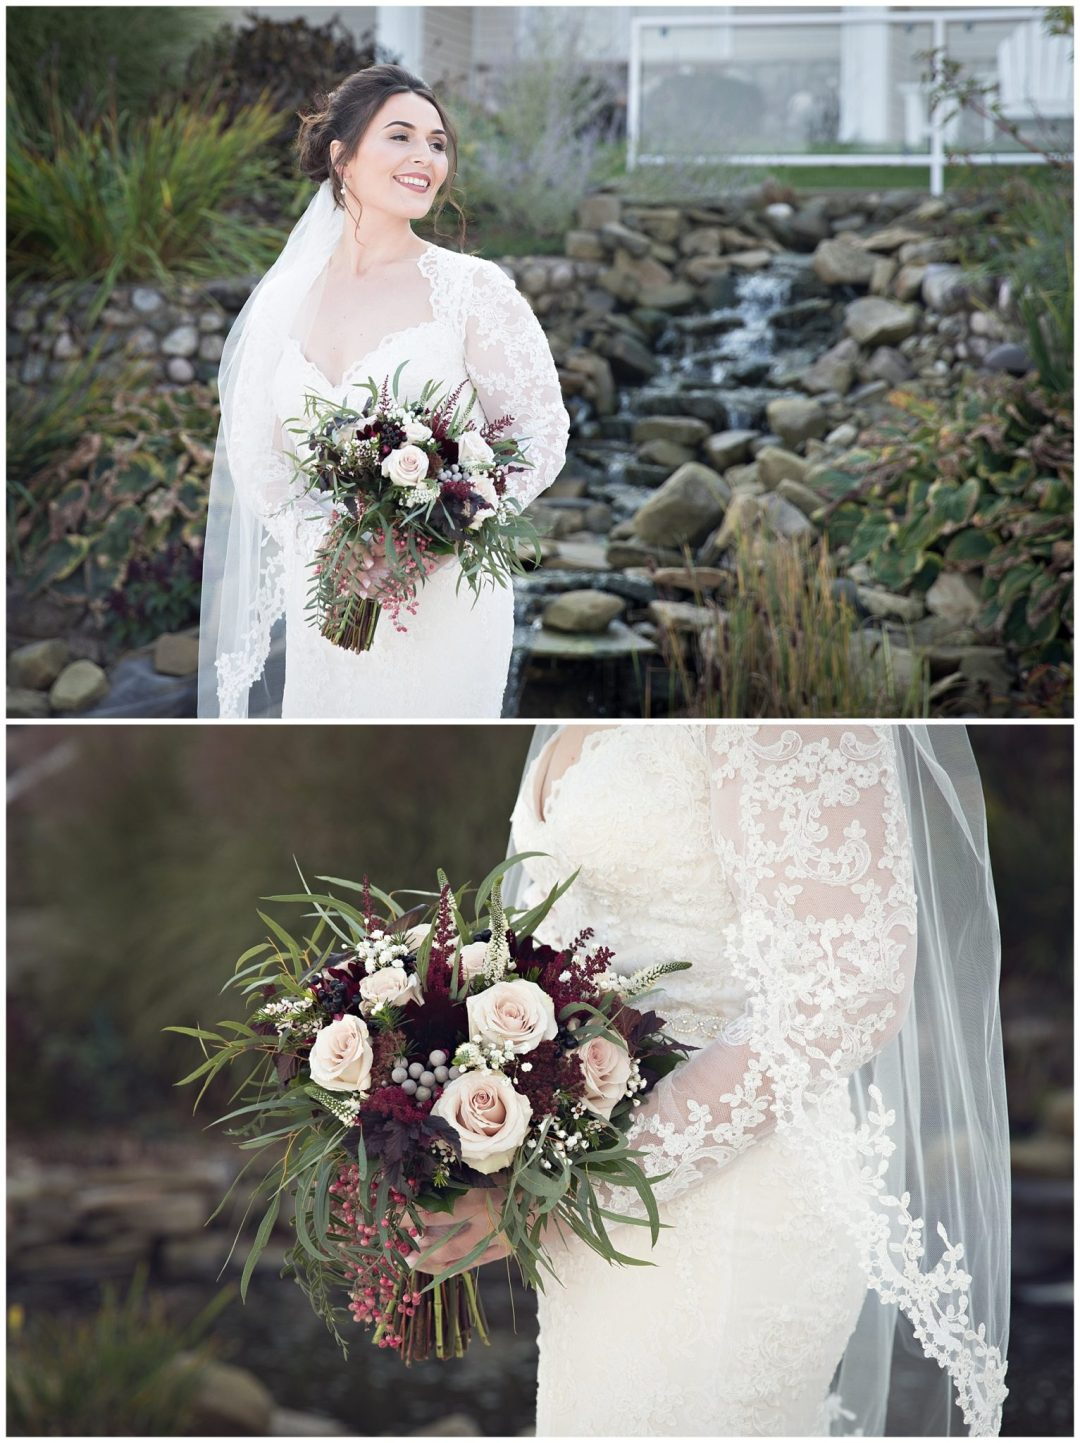 Bridal in stunning lace bridal gown with cream and Burgundy bouquet at Bay Pointe Inn on Gun Lake photographed by Melissa Gregersen Photography